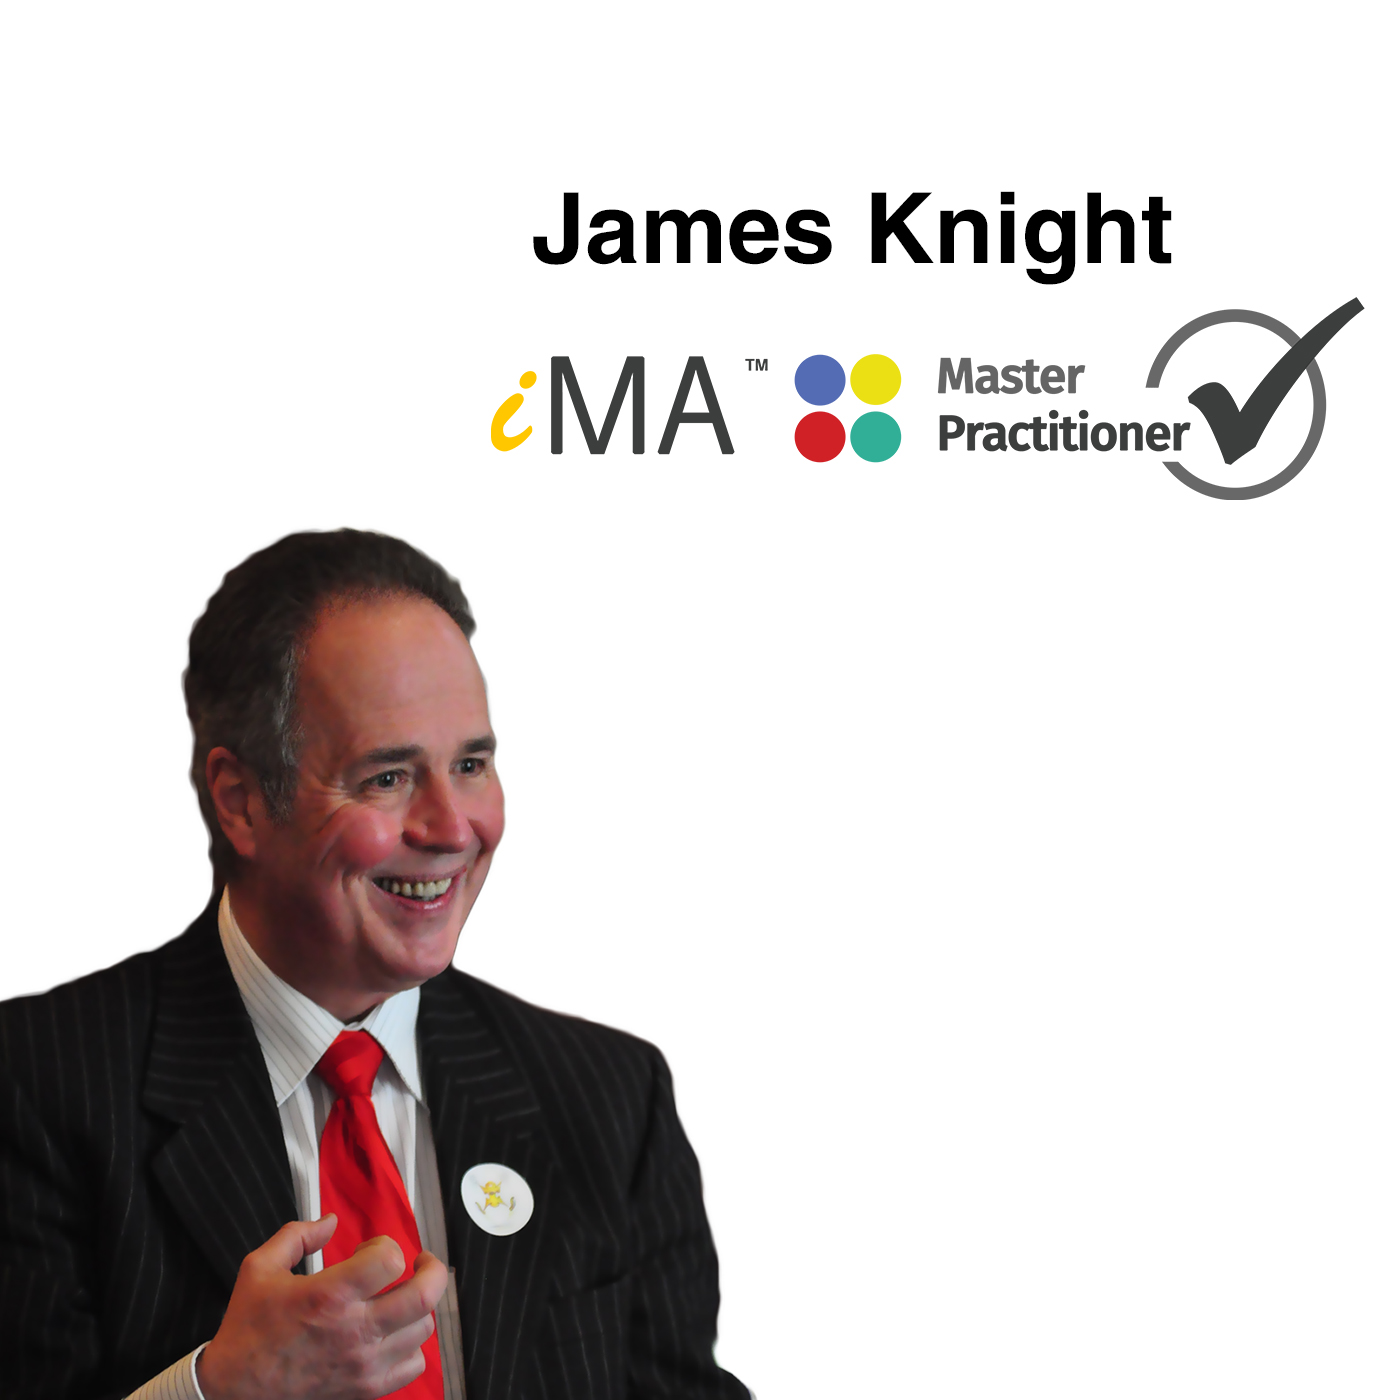 James Knight: Process of Becoming an Accredited iMA Practitioner